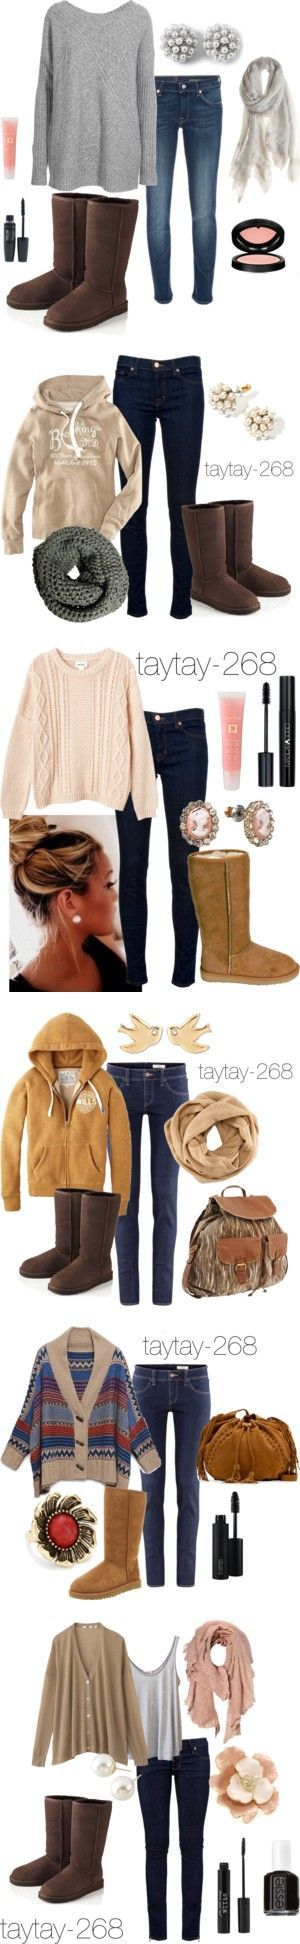 """""""Uggs Are Uhh-Mazing"""" by taytay-268 on Polyvore"""